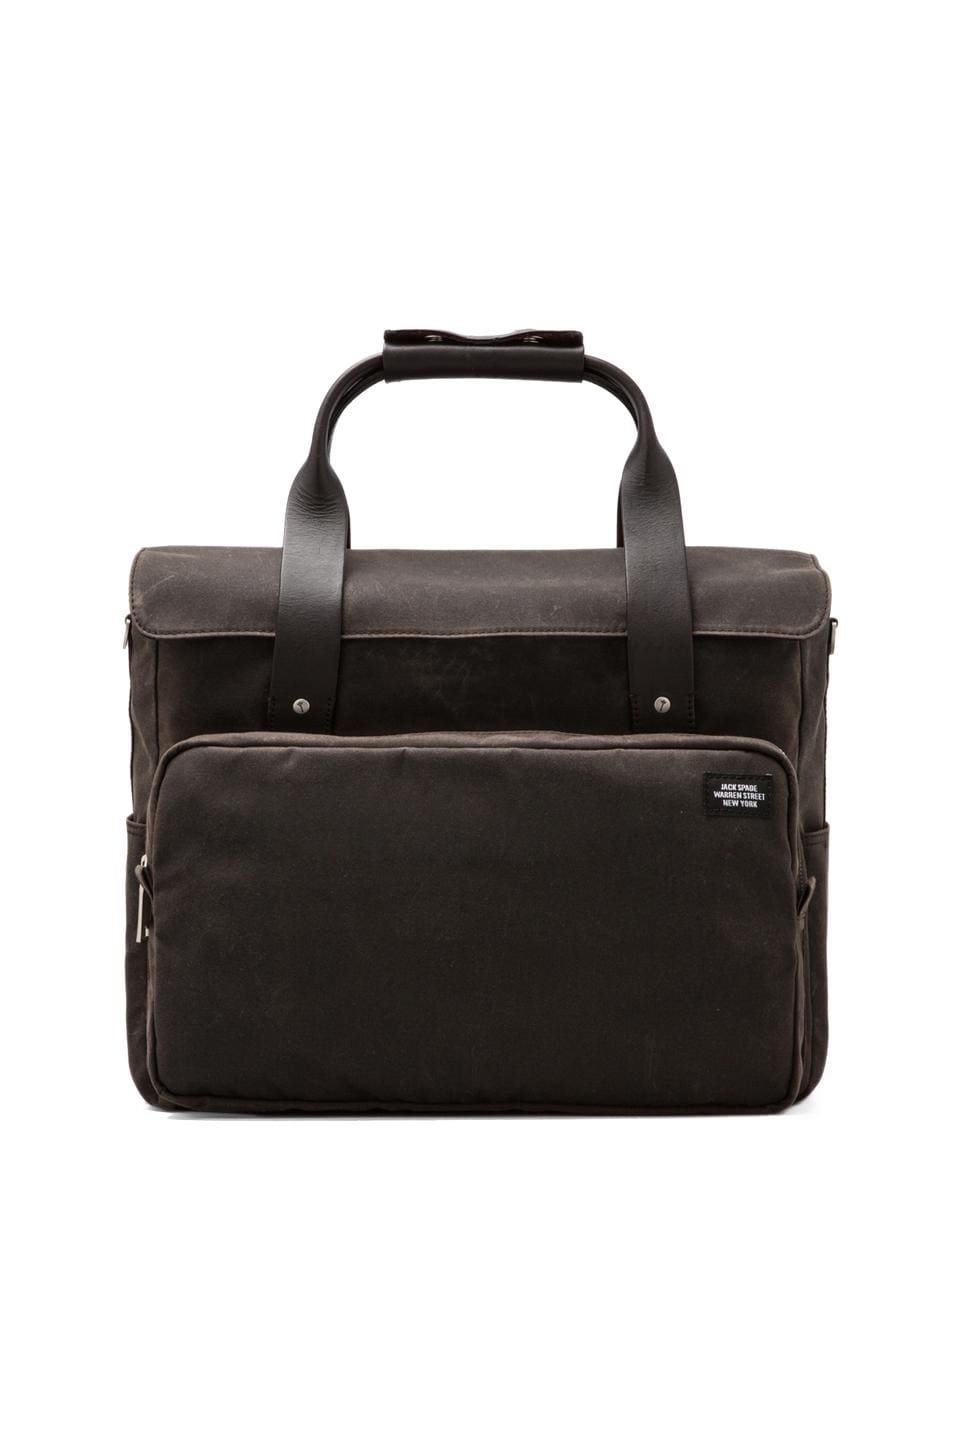 Jack Spade Waxwear Survey Bag en Chocolate/Navy